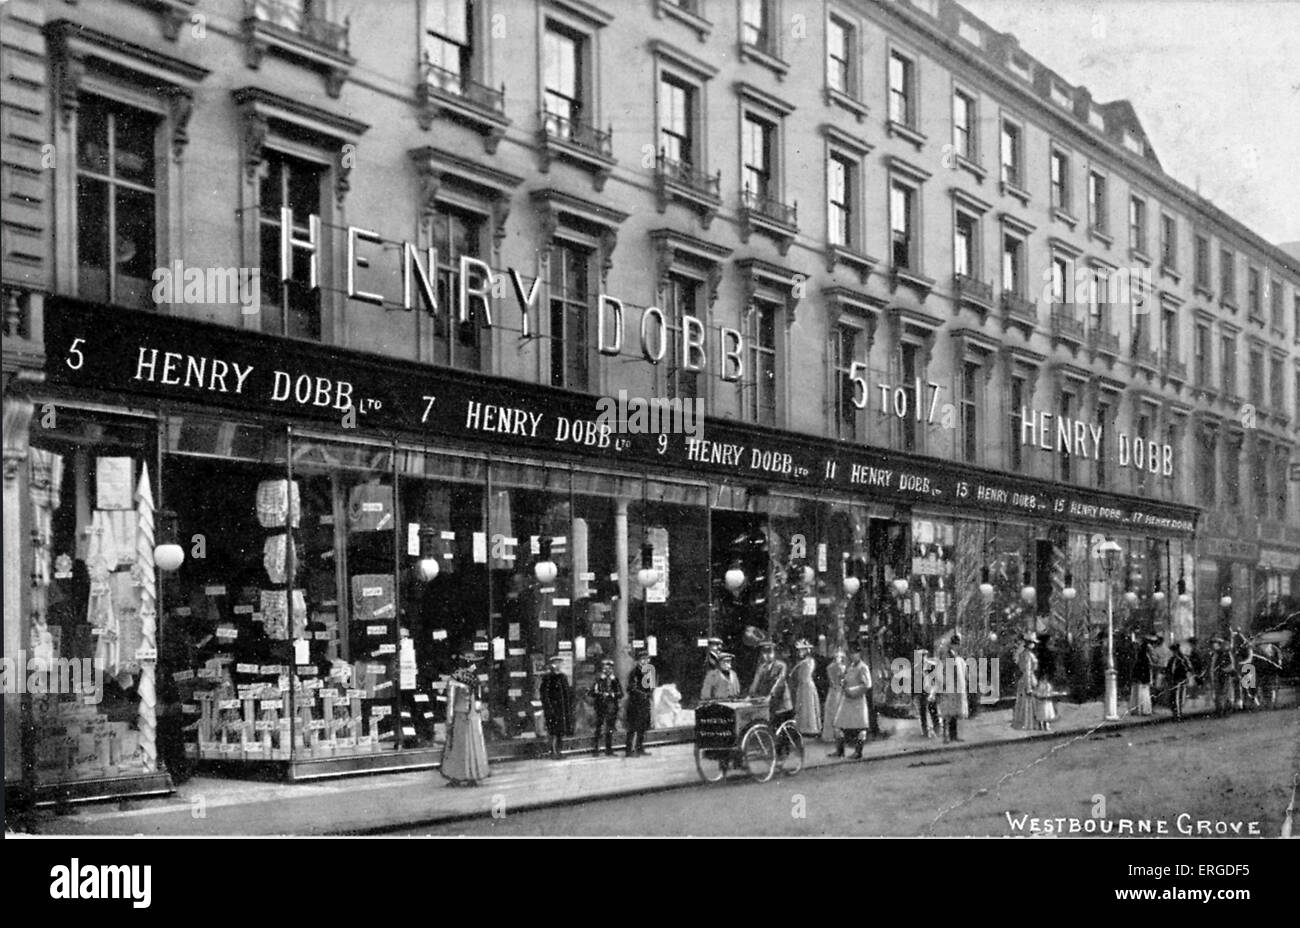 Henry Dobb Ltd Department Store. Westbourne Grove, London. - Stock Image